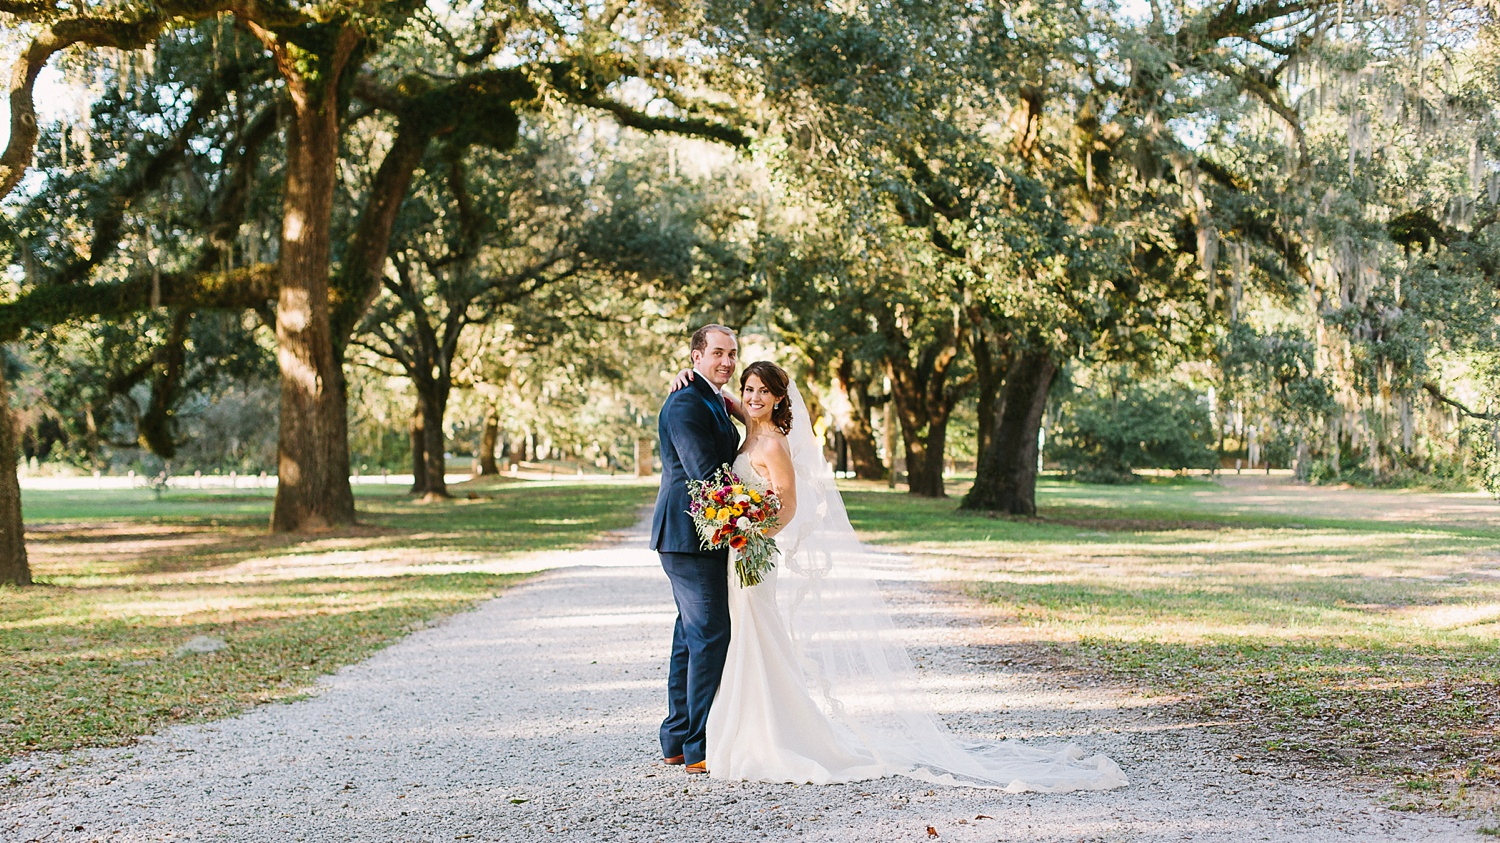 Lindsey_A_Miller_photography_charleston_mcleod_plantation_wedding_row_of_oaks_southern_classic_fall_spanish_moss_historic_home_046.jpg